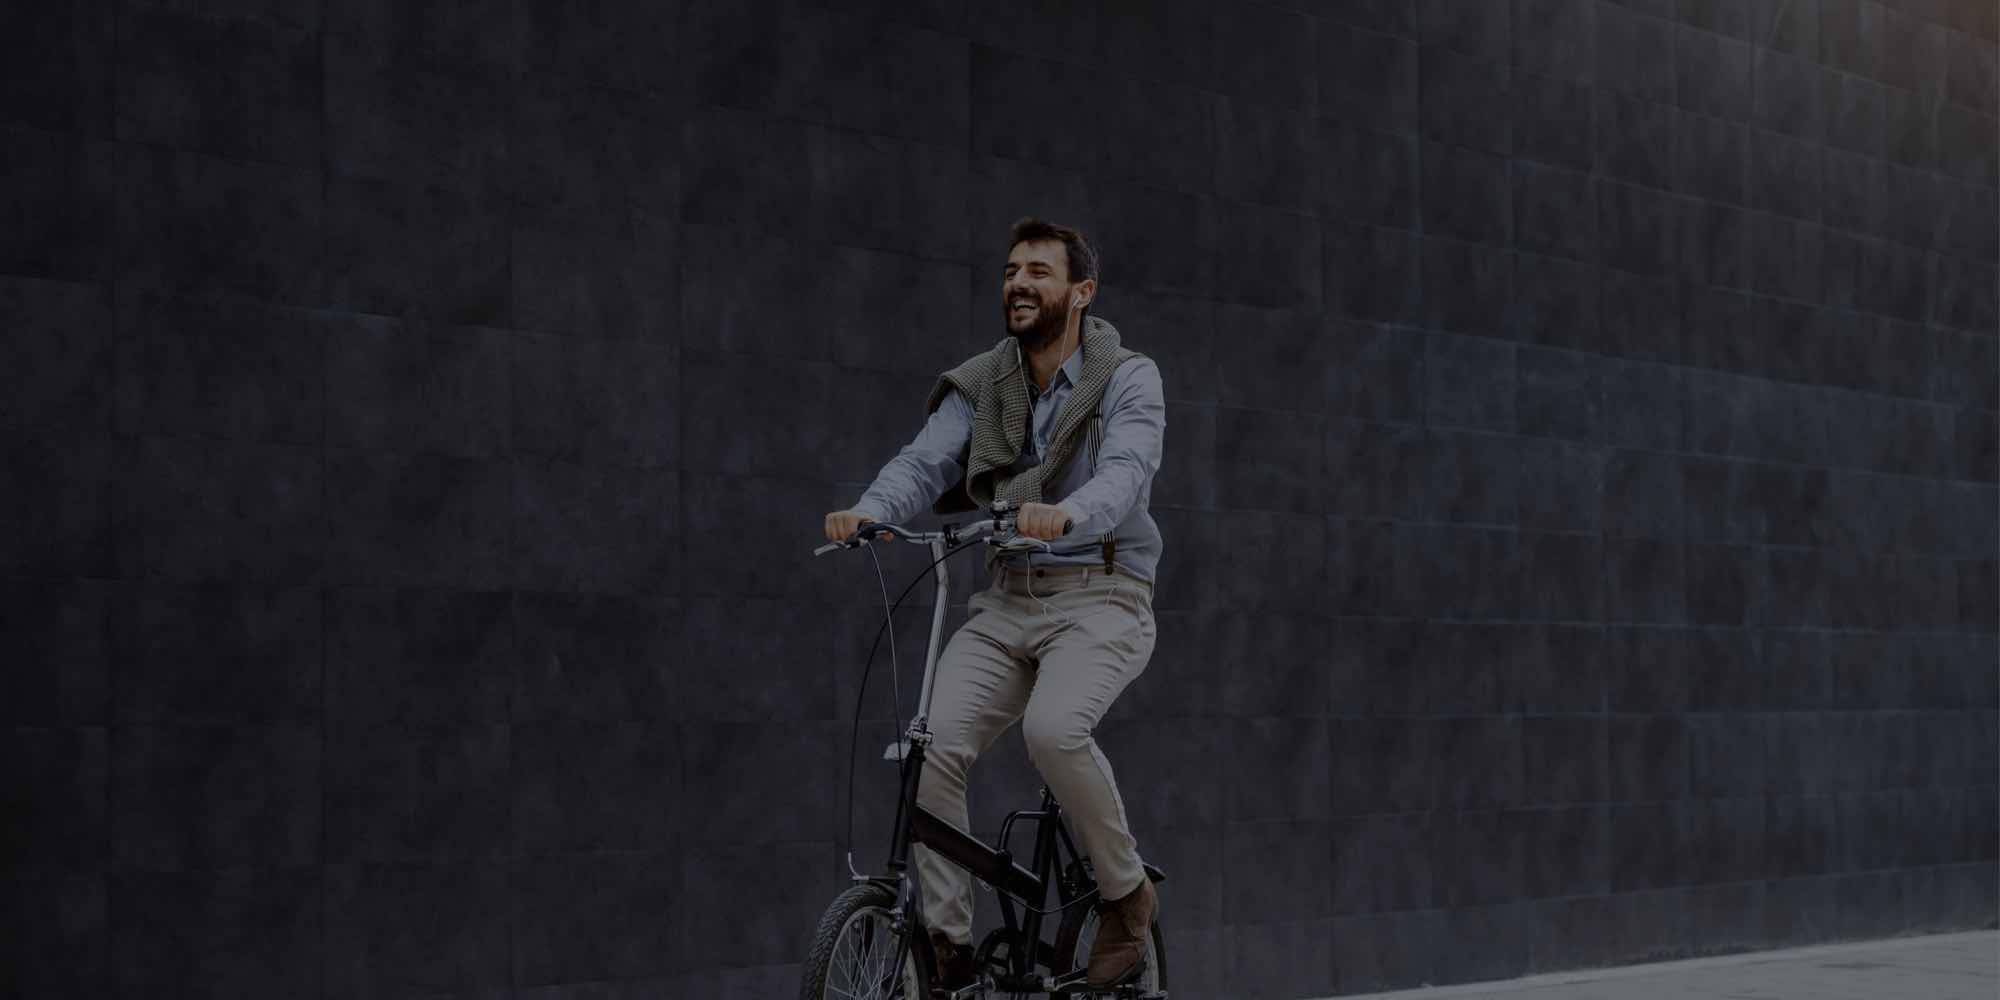 Man riding bike with smile on his face